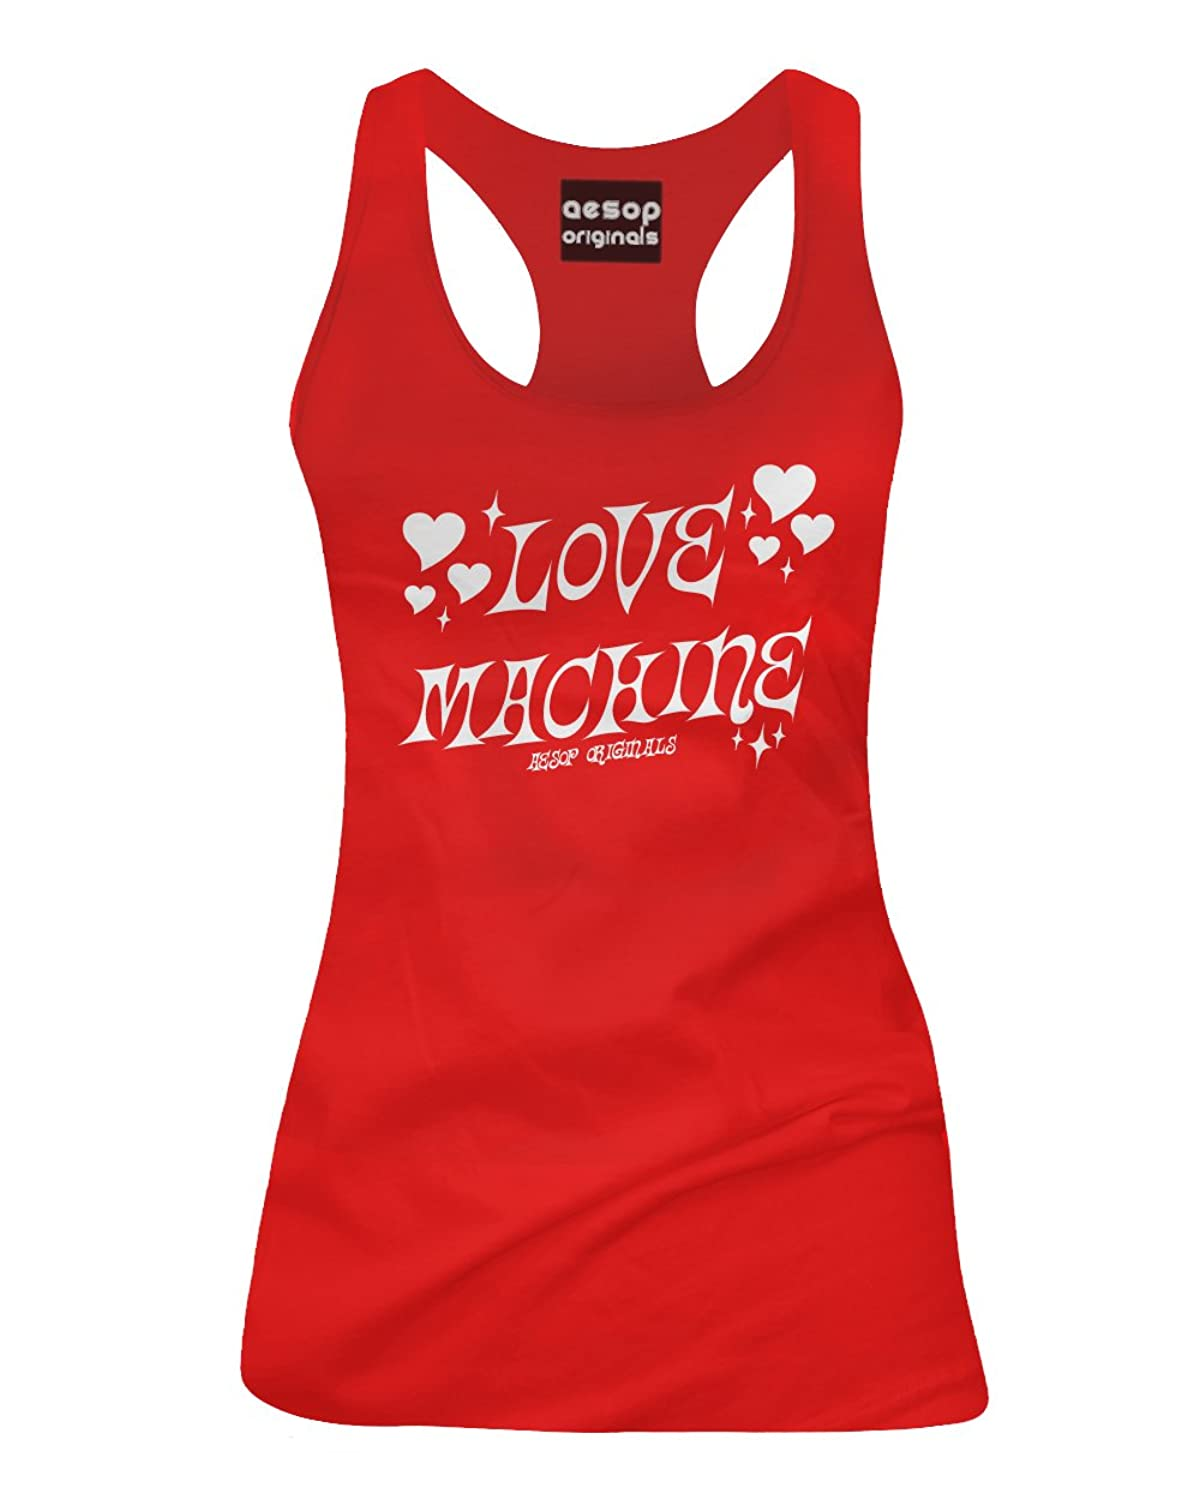 Aesop Originals Women's Love Machine Tank Top Red